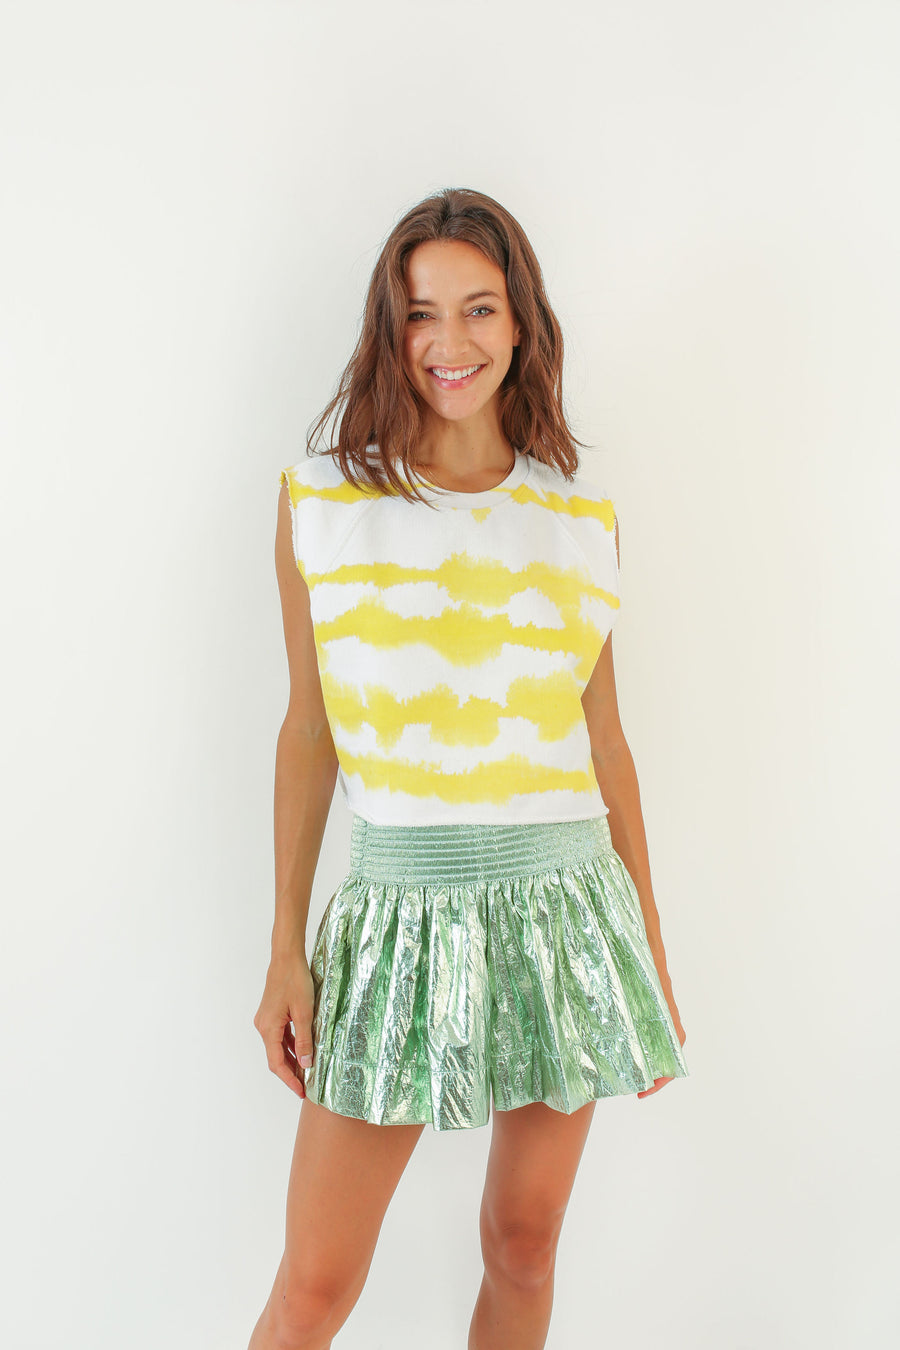 CALI CROP SWEATSHIRT LEMON TIE DYE *LIMITED*EDITION*